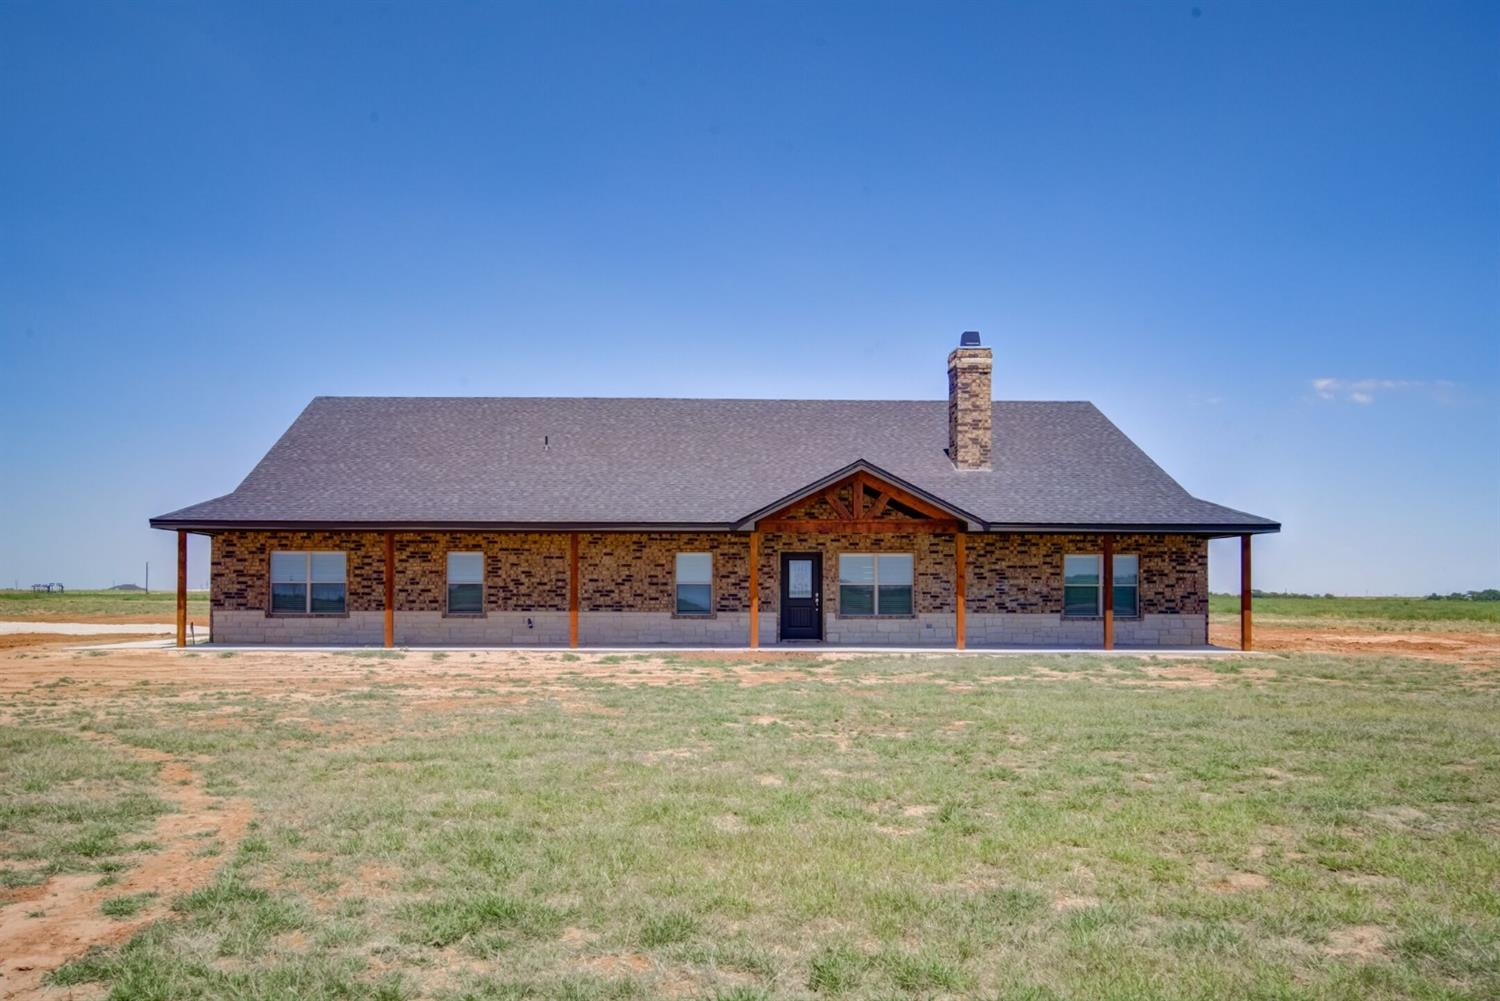 This gorgeous, brand new, open concept 4/3/2 home sits on just over 10 acres in the fabulous Idalou ISD. Features include tons of natural light everywhere you look, FaNtAsTiC kitchen w a butcher block island & great pantry, granite throughout the entire home, a stained beam that matches the mantle w cable connections & electrical outlets, 3 extra bedrooms that all have built-in shelves & 1 has a private bathroom, all 3 FULL bathrooms have double vanities plus it boasts an over-sized garage w a door to the huge covered back porch. The spacious isolated master & the master suite won't disappoint, wrap-around closet has built in shelves & a built in vanity. The 2nd family room or flex space features great lockers & the laundry room has a sink, tons of cabinets & counter space w an extra closet. BONUS: grass seed coming up, the house will be surrounded by lush green by winter! Make this your own peaceful country oasis today!!! Culvert on the way for the driveway!